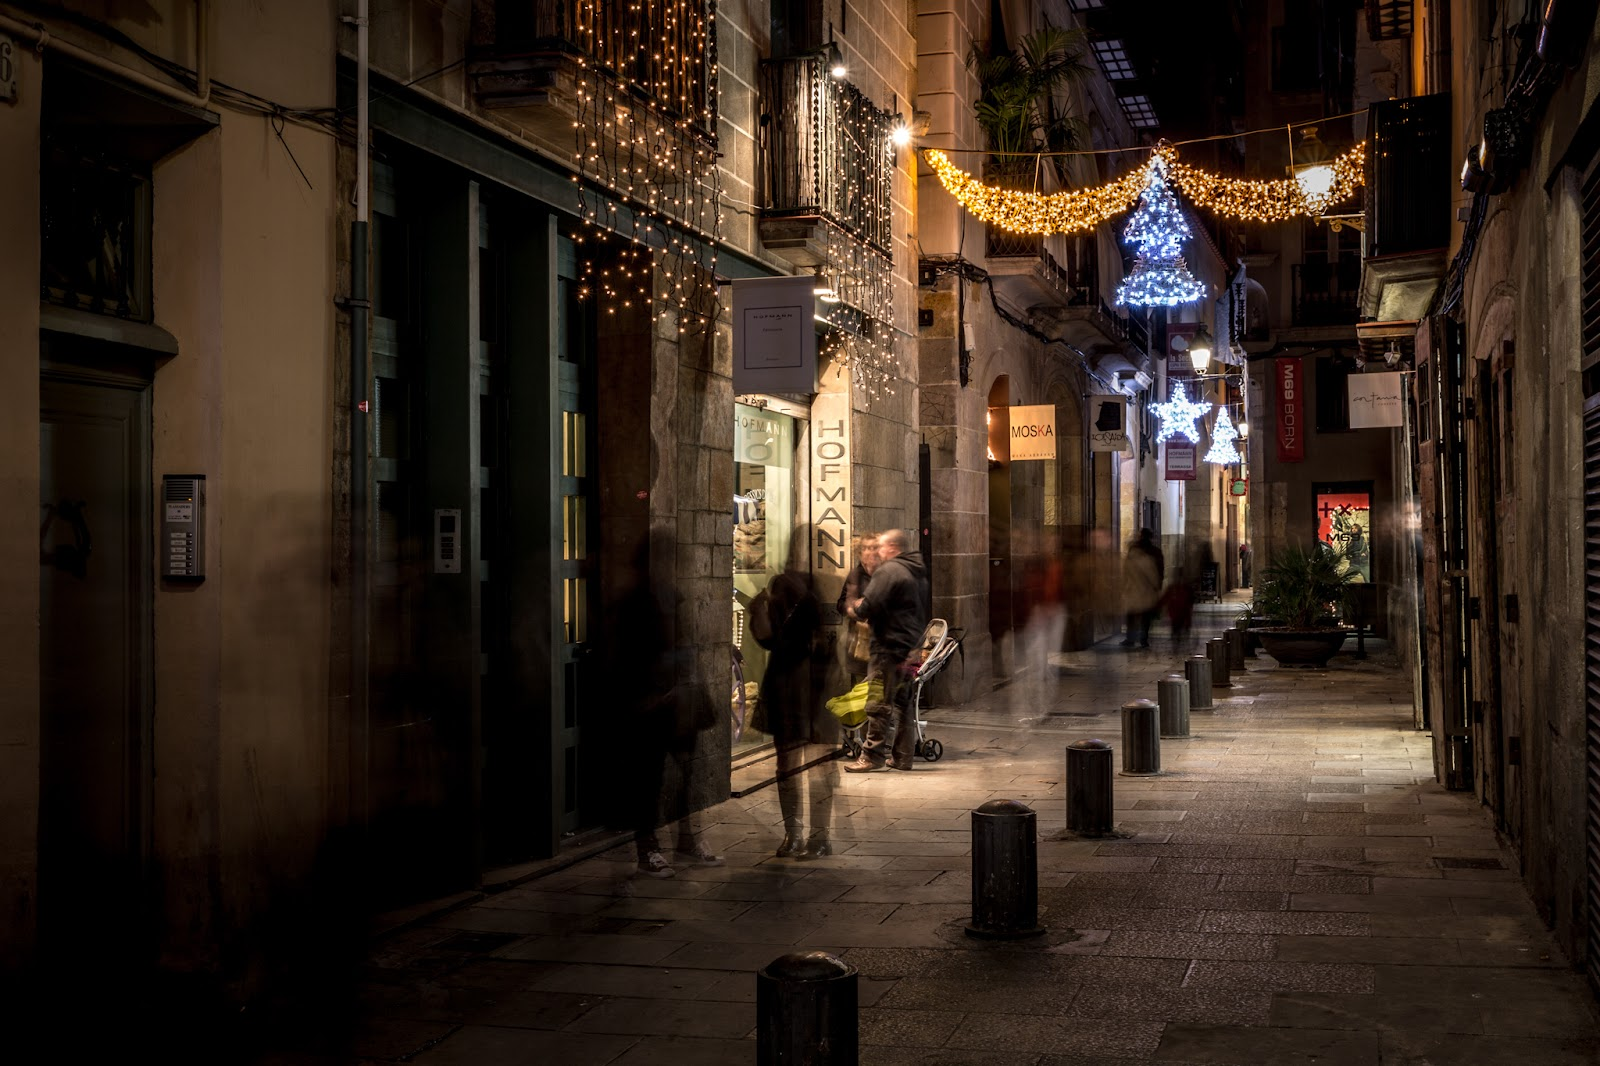 Carrer dels Flassaders | Canon EOS 5D MkIII | ISO100 | Canon 40mm | f/16 | 15s (trípode)